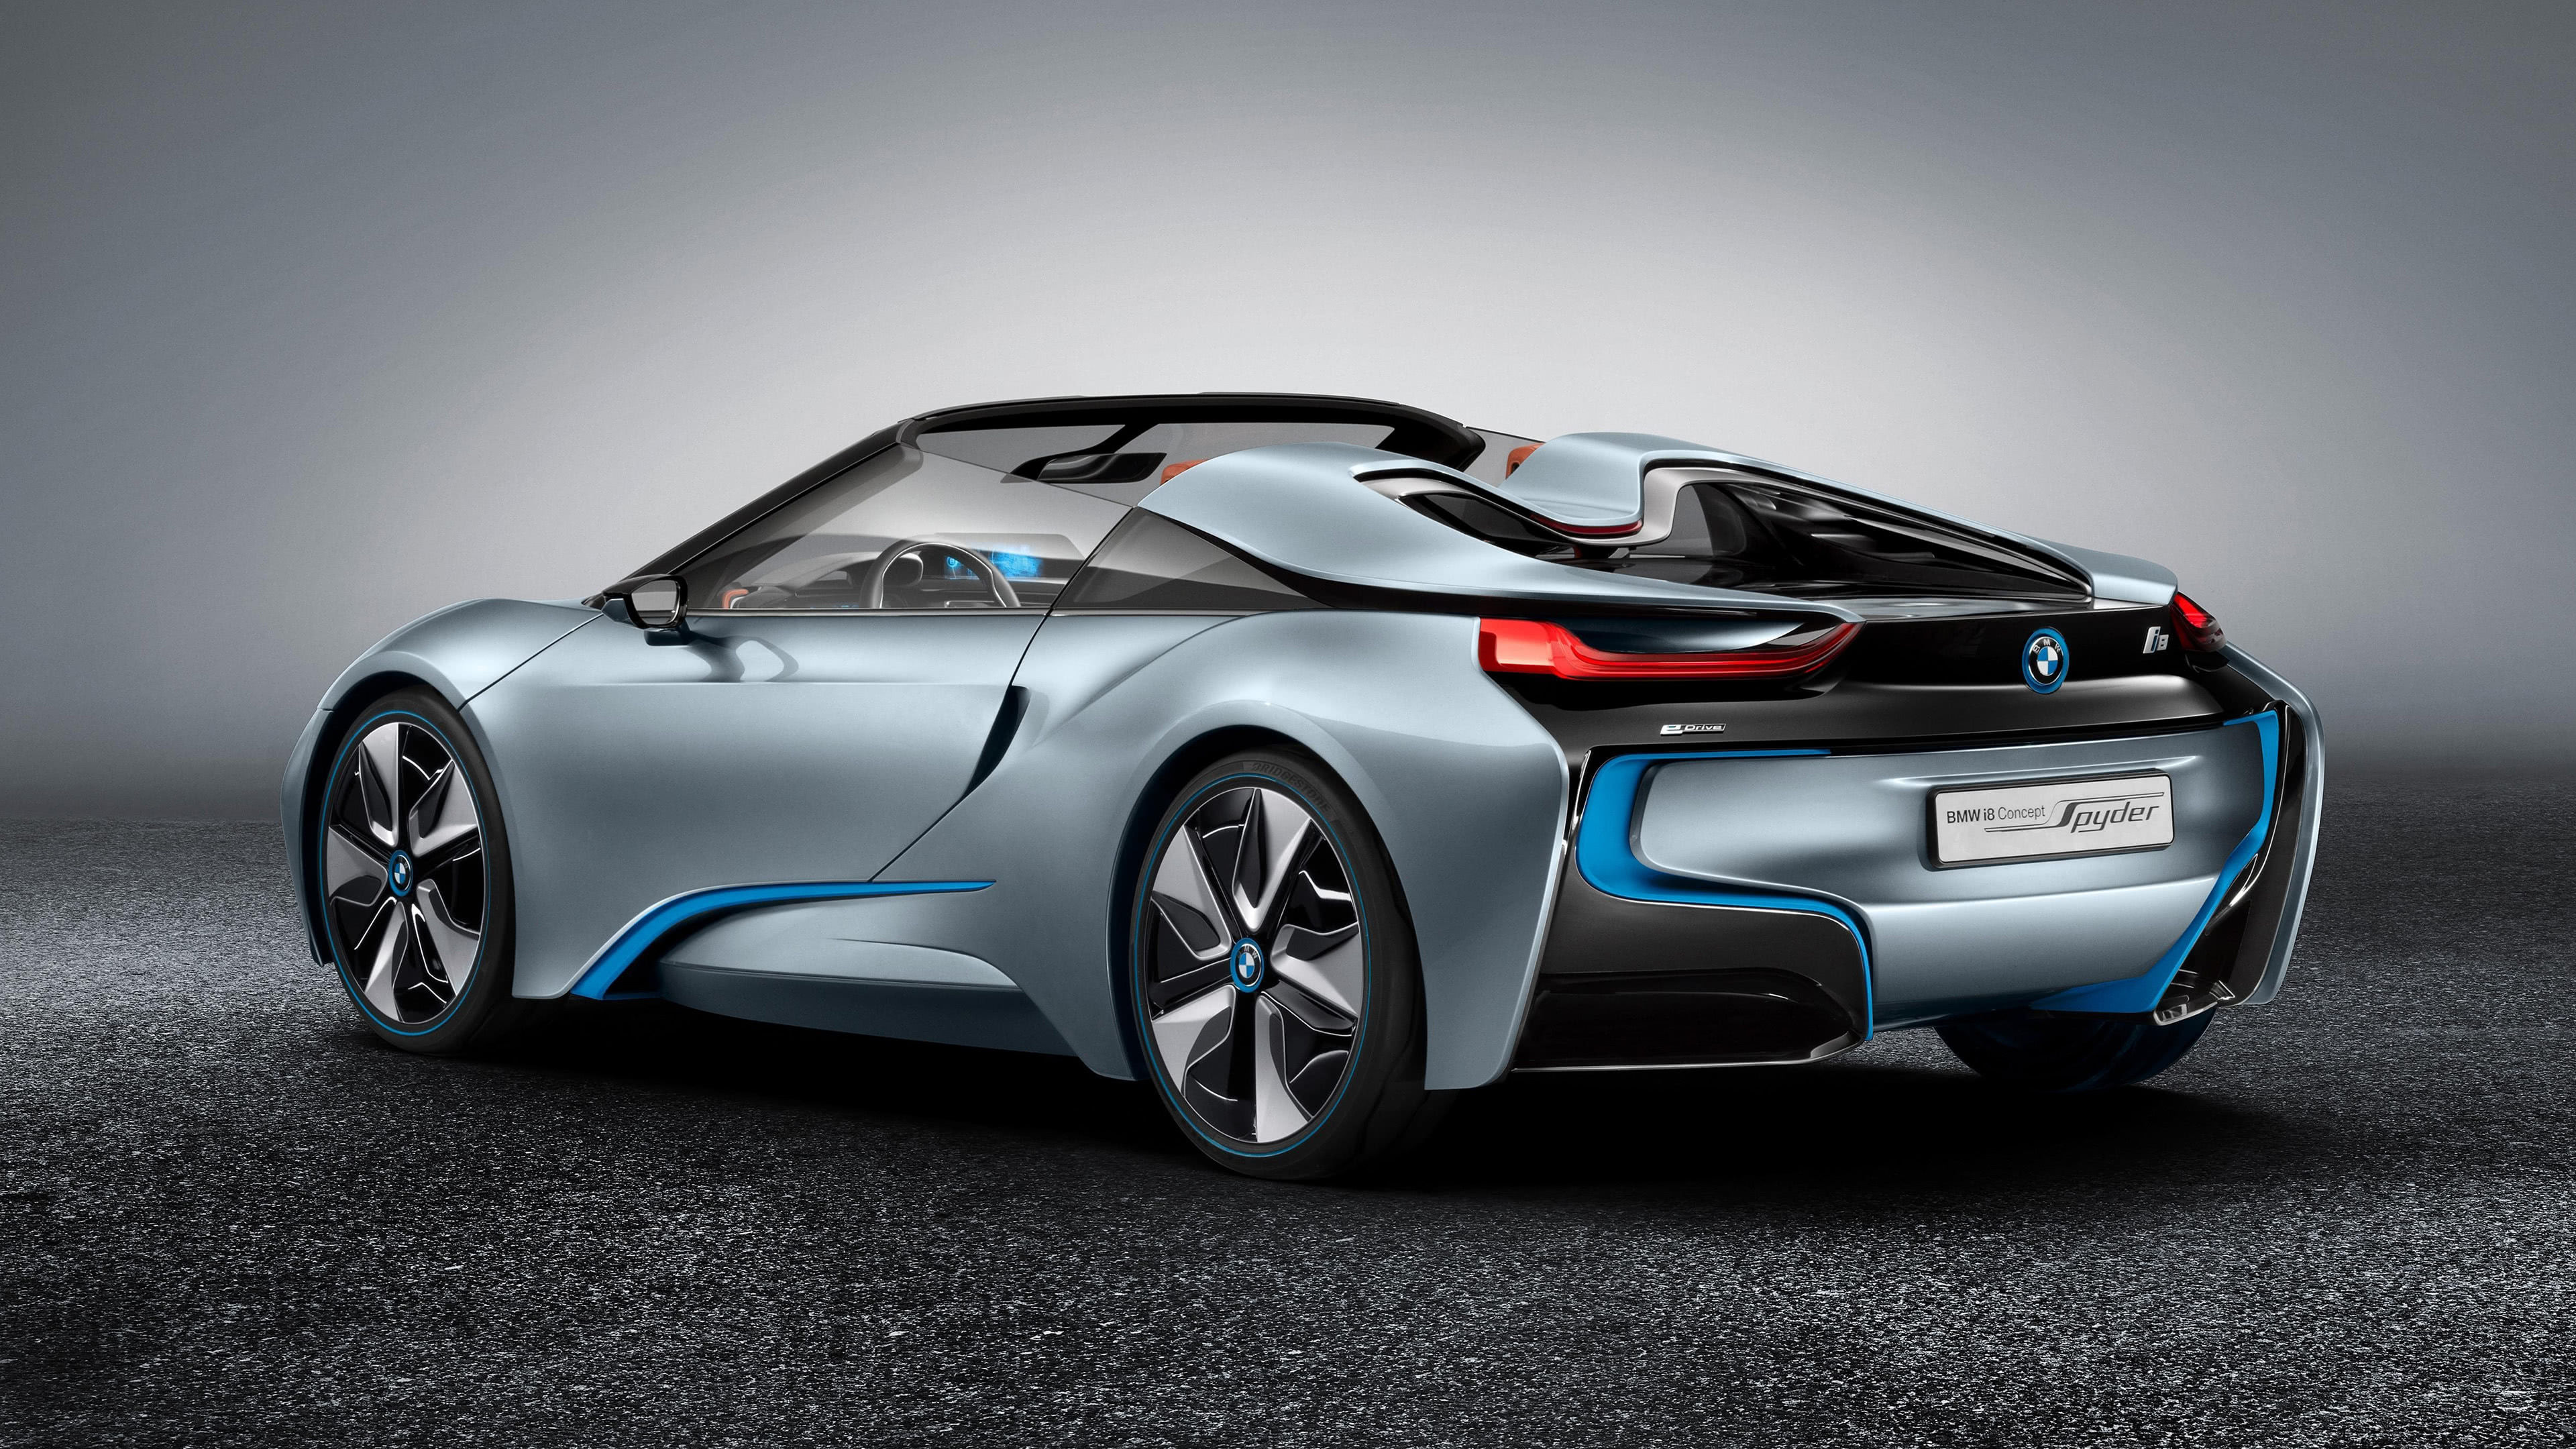 bmw i8 spyder roadster rear uhd 4k wallpaper